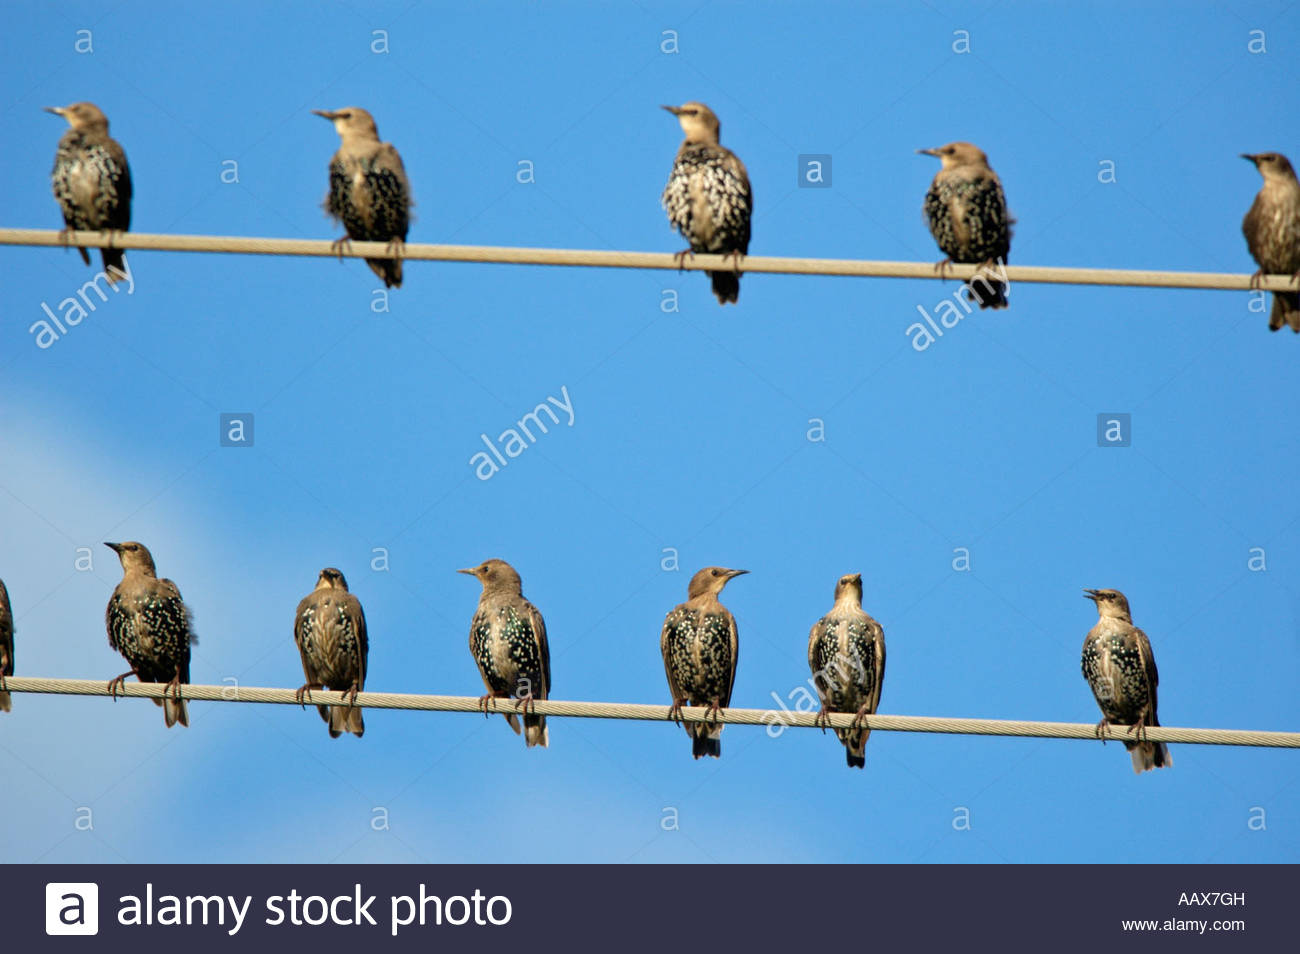 L Vulgaris Stock Photos & L Vulgaris Stock Images - Alamy